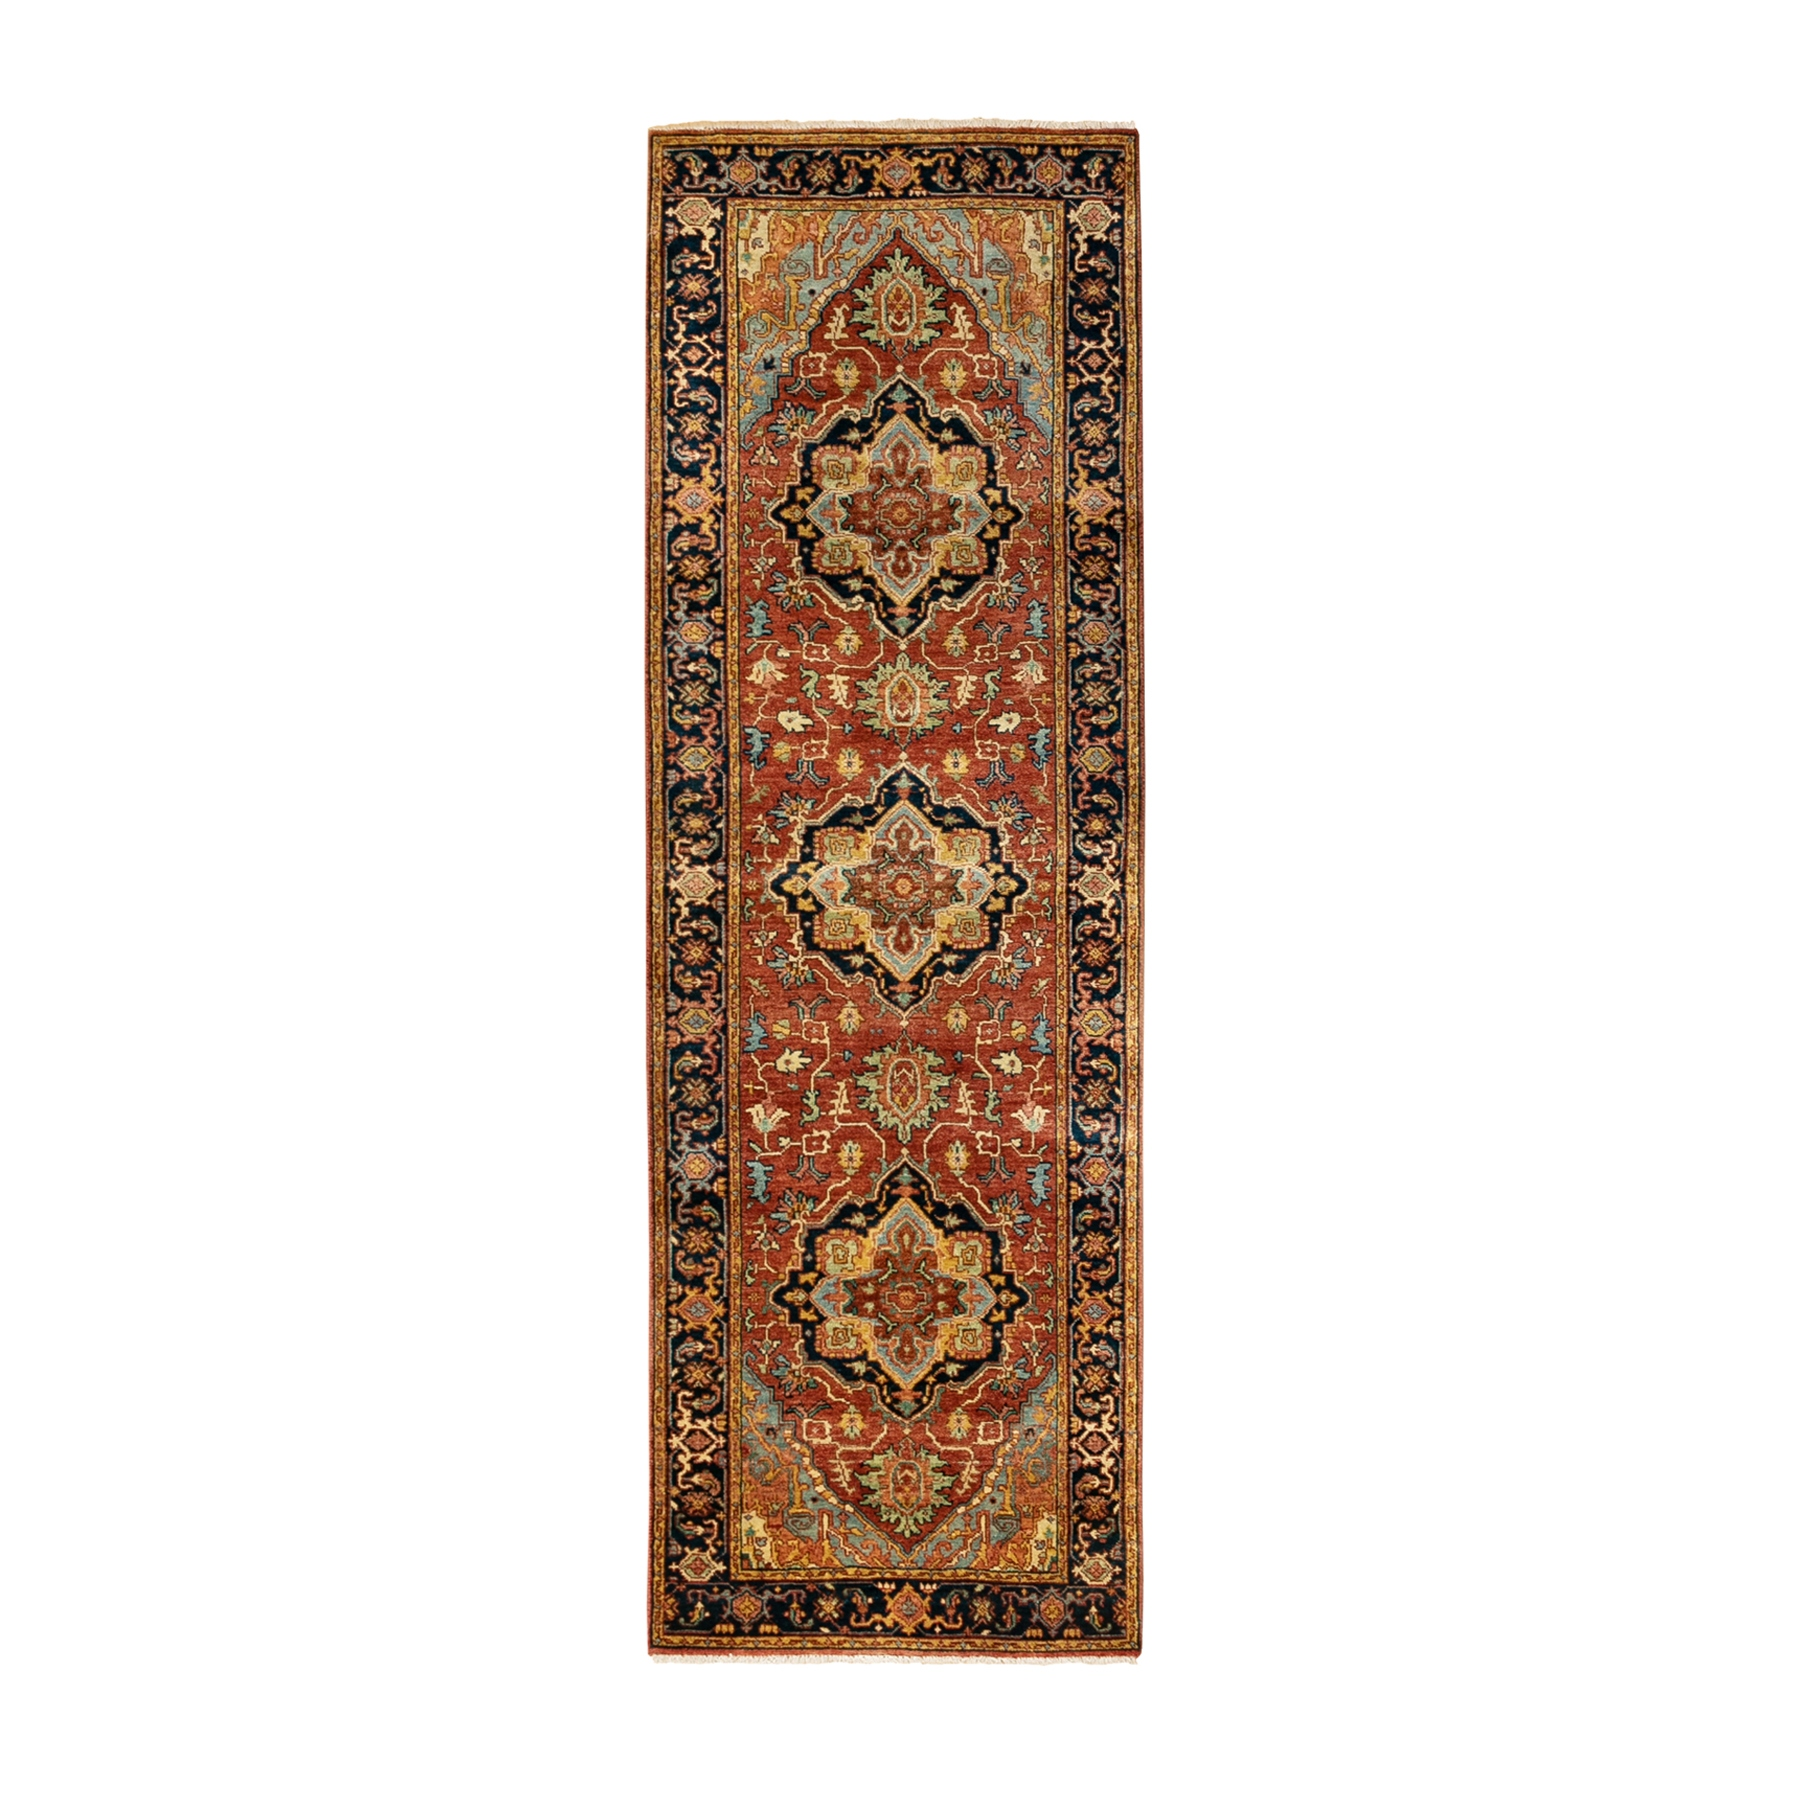 "2'6""x8'1"" Red Antiqued Heriz Re-Creation Soft And Supple Wool Hand Knotted Oriental Rug"